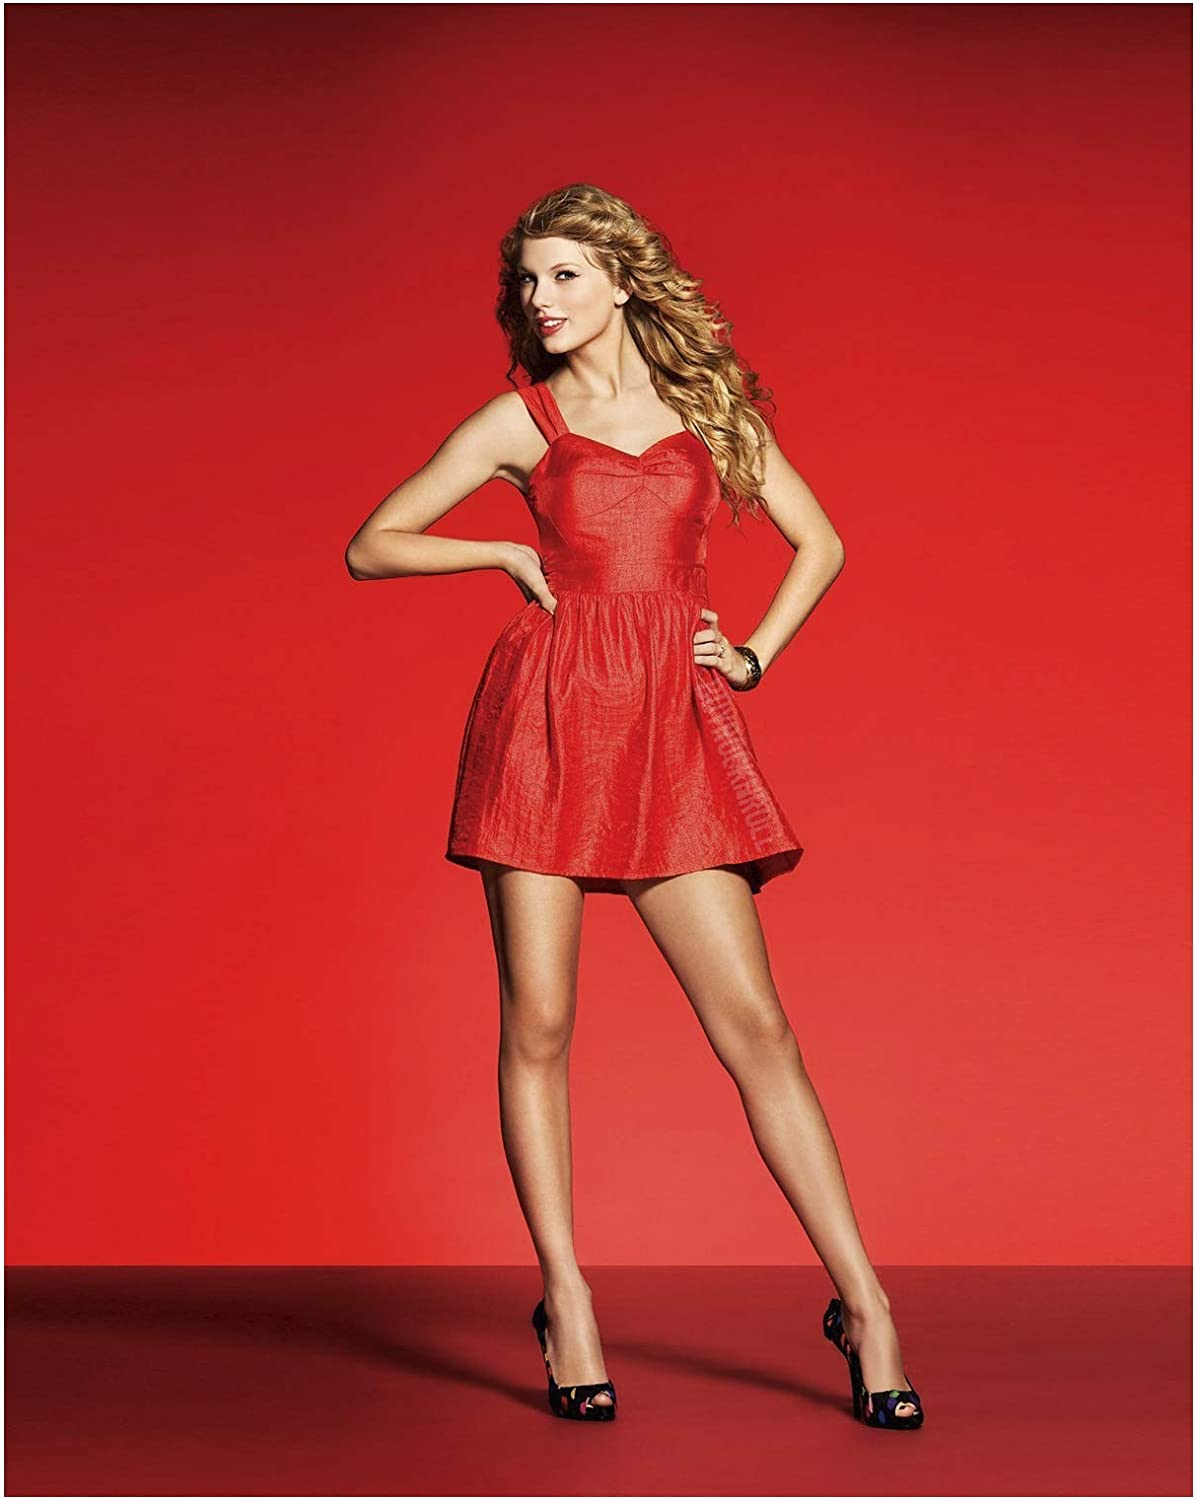 Amazon Com Taylor Swift Official Red Dress Poster 24 X 36 Posters Prints